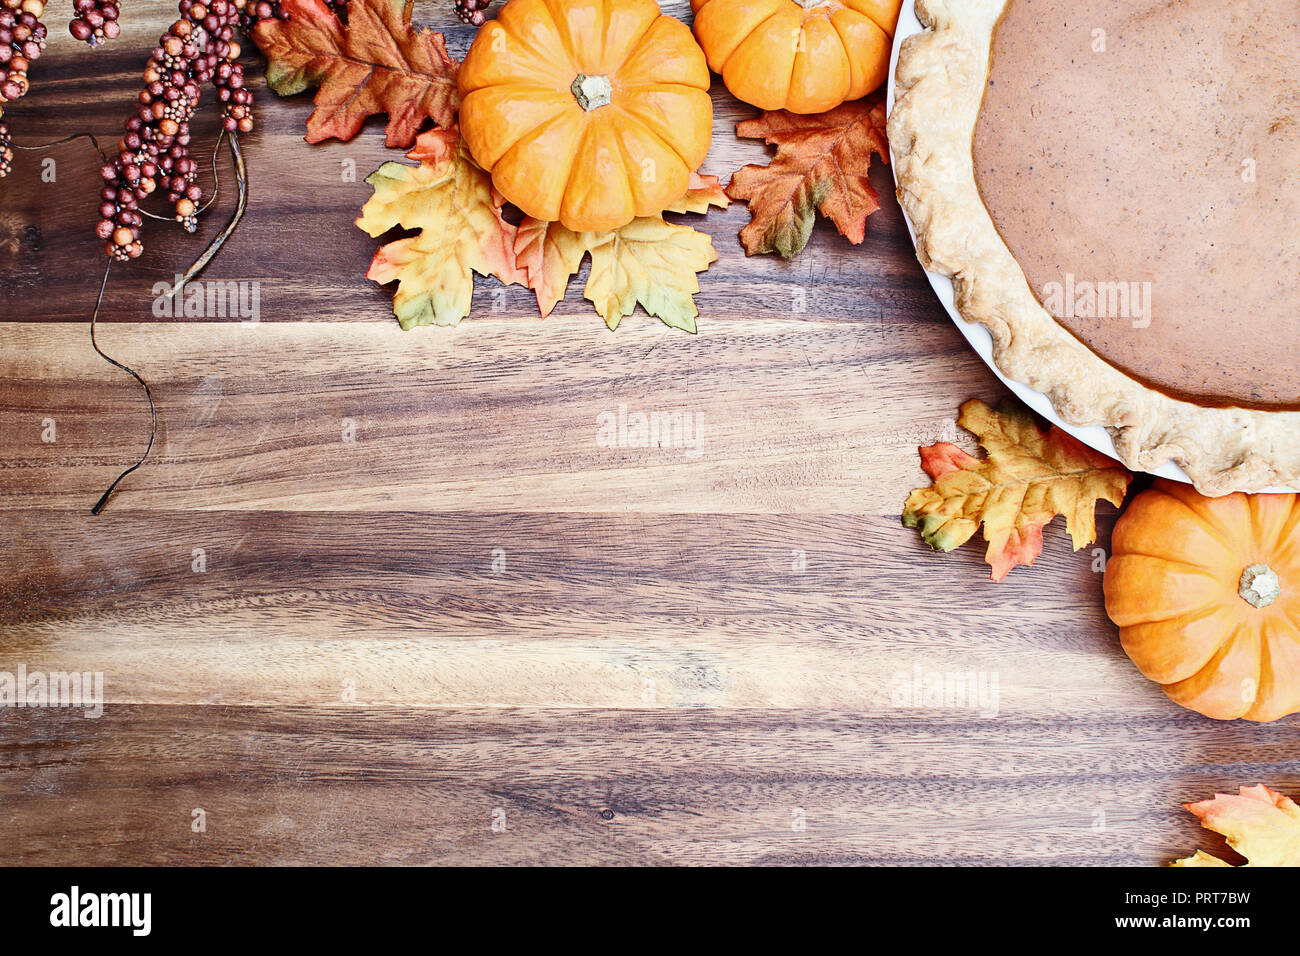 hight resolution of homemade pumpkin pie in pie plate with little pumpkins autumn leaves and room for text